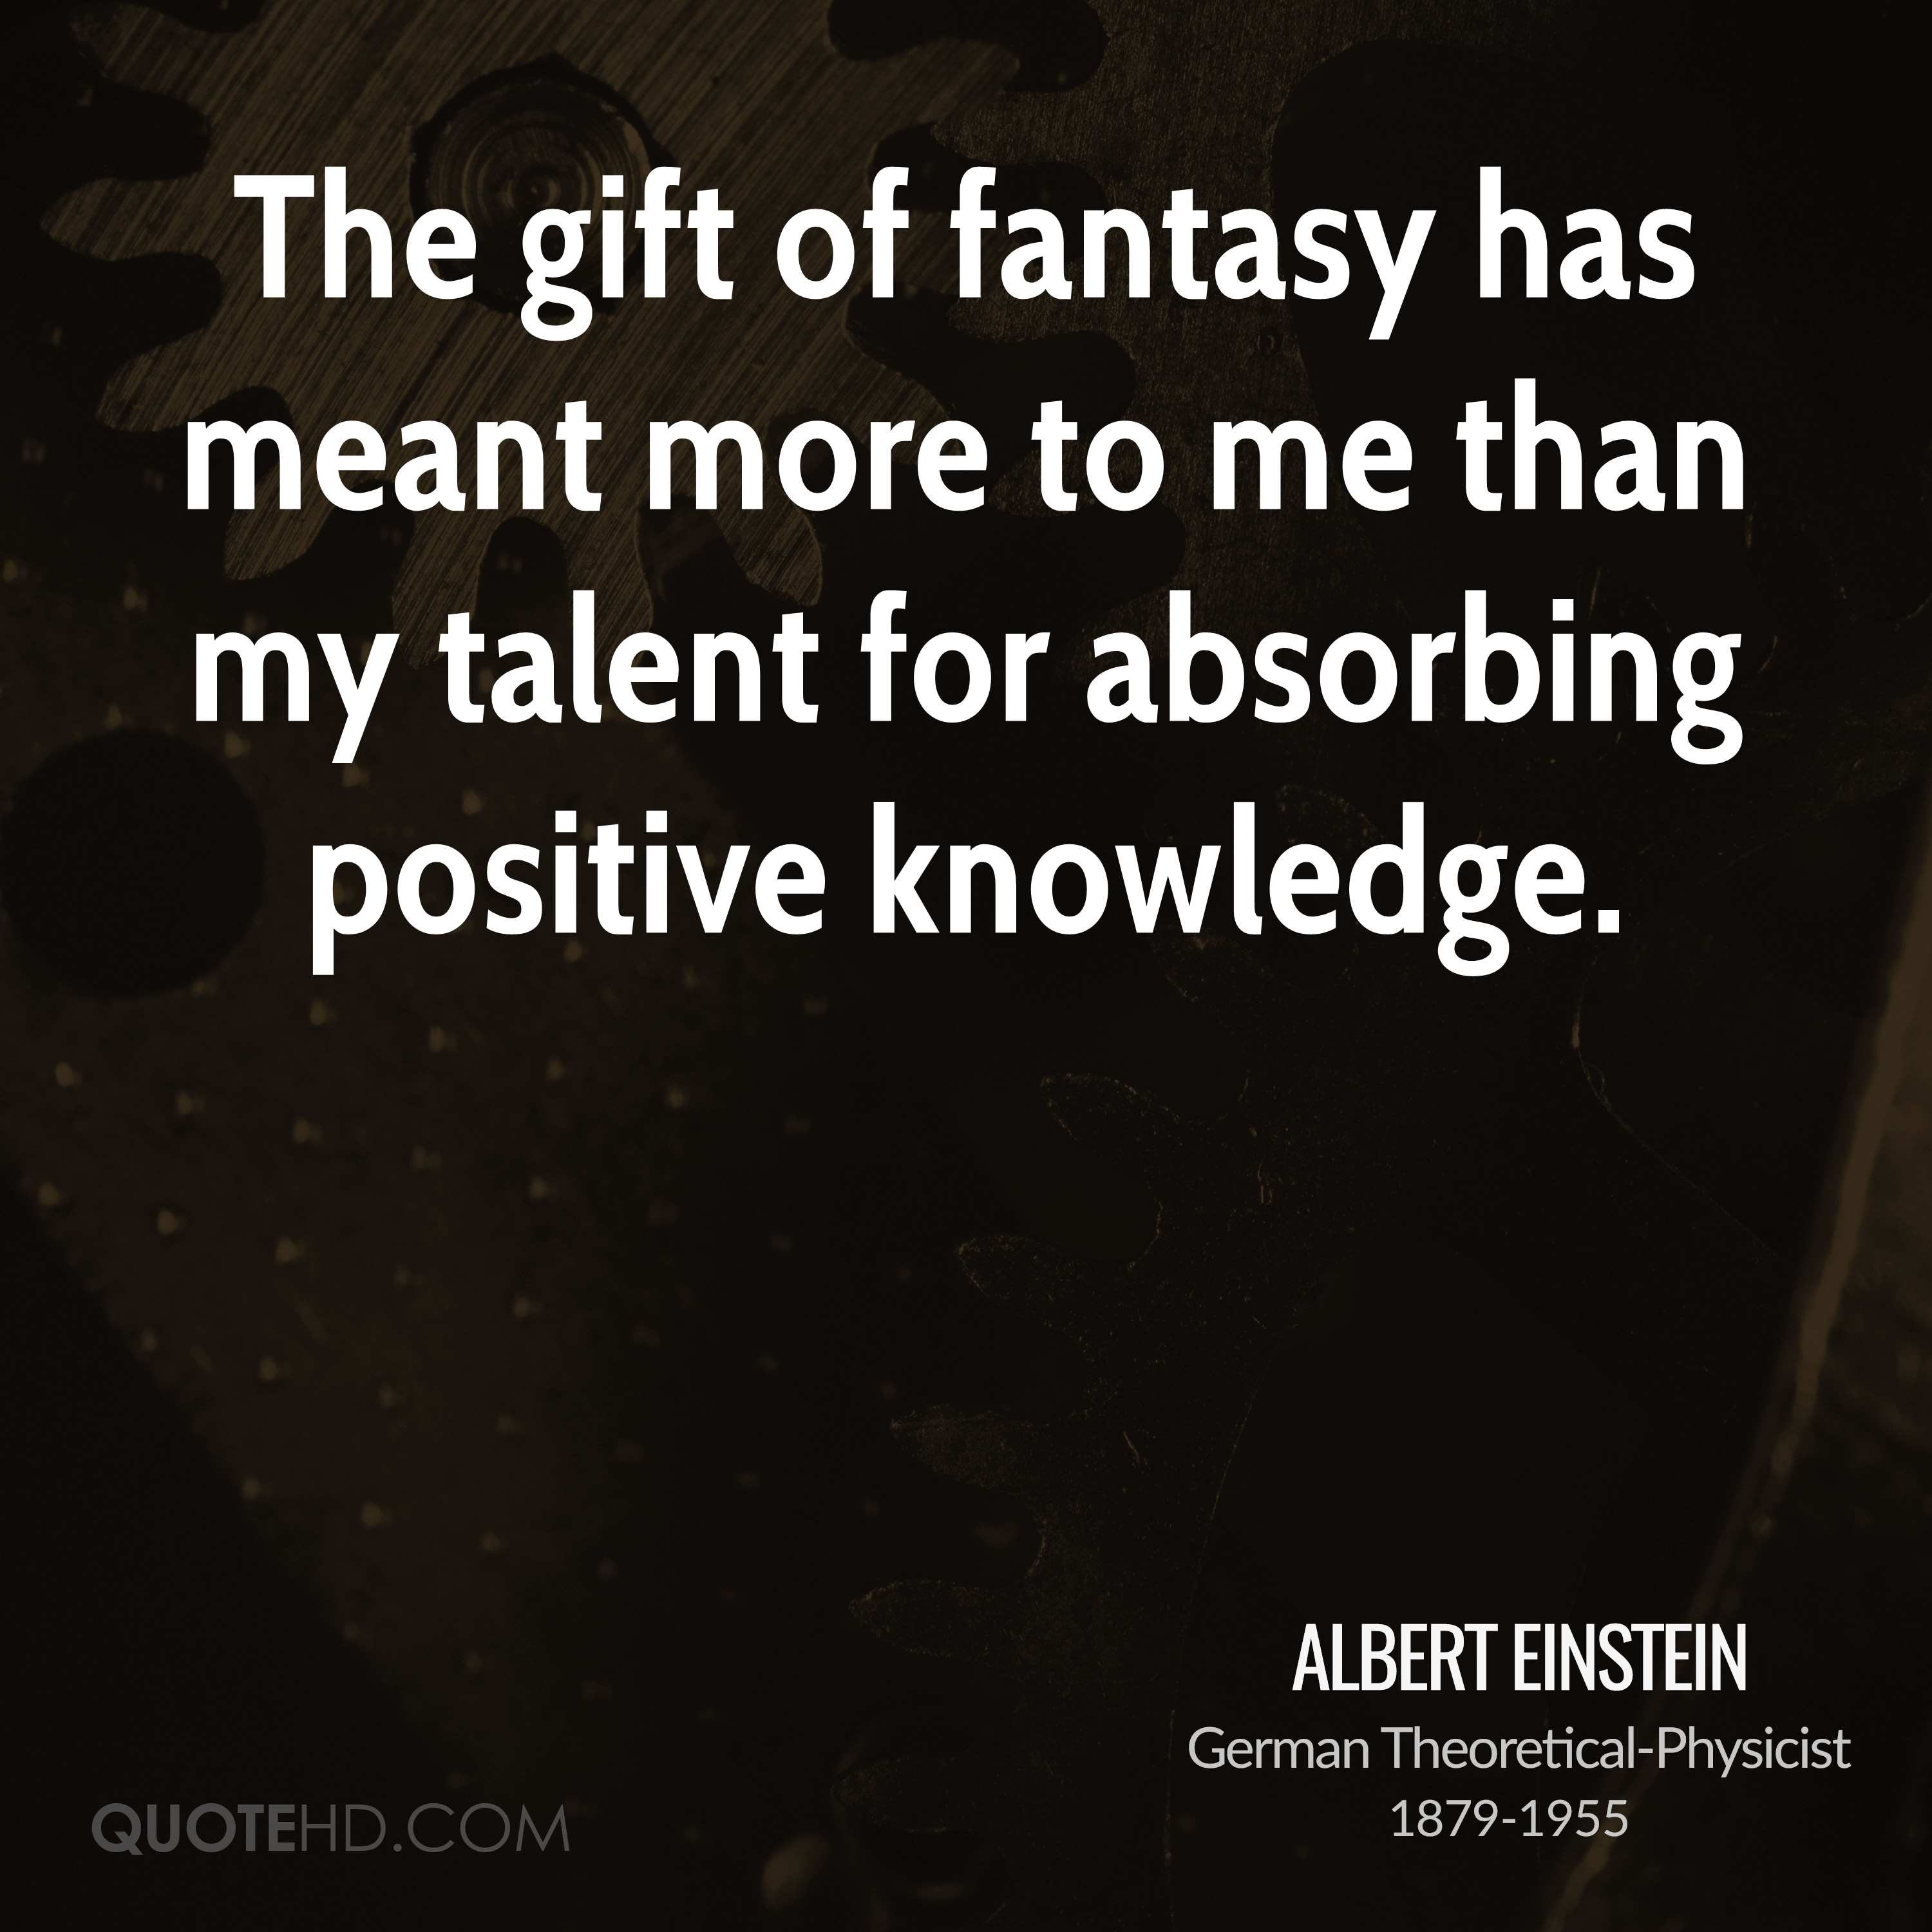 The gift of fantasy has meant more to me than my talent for absorbing positive knowledge.